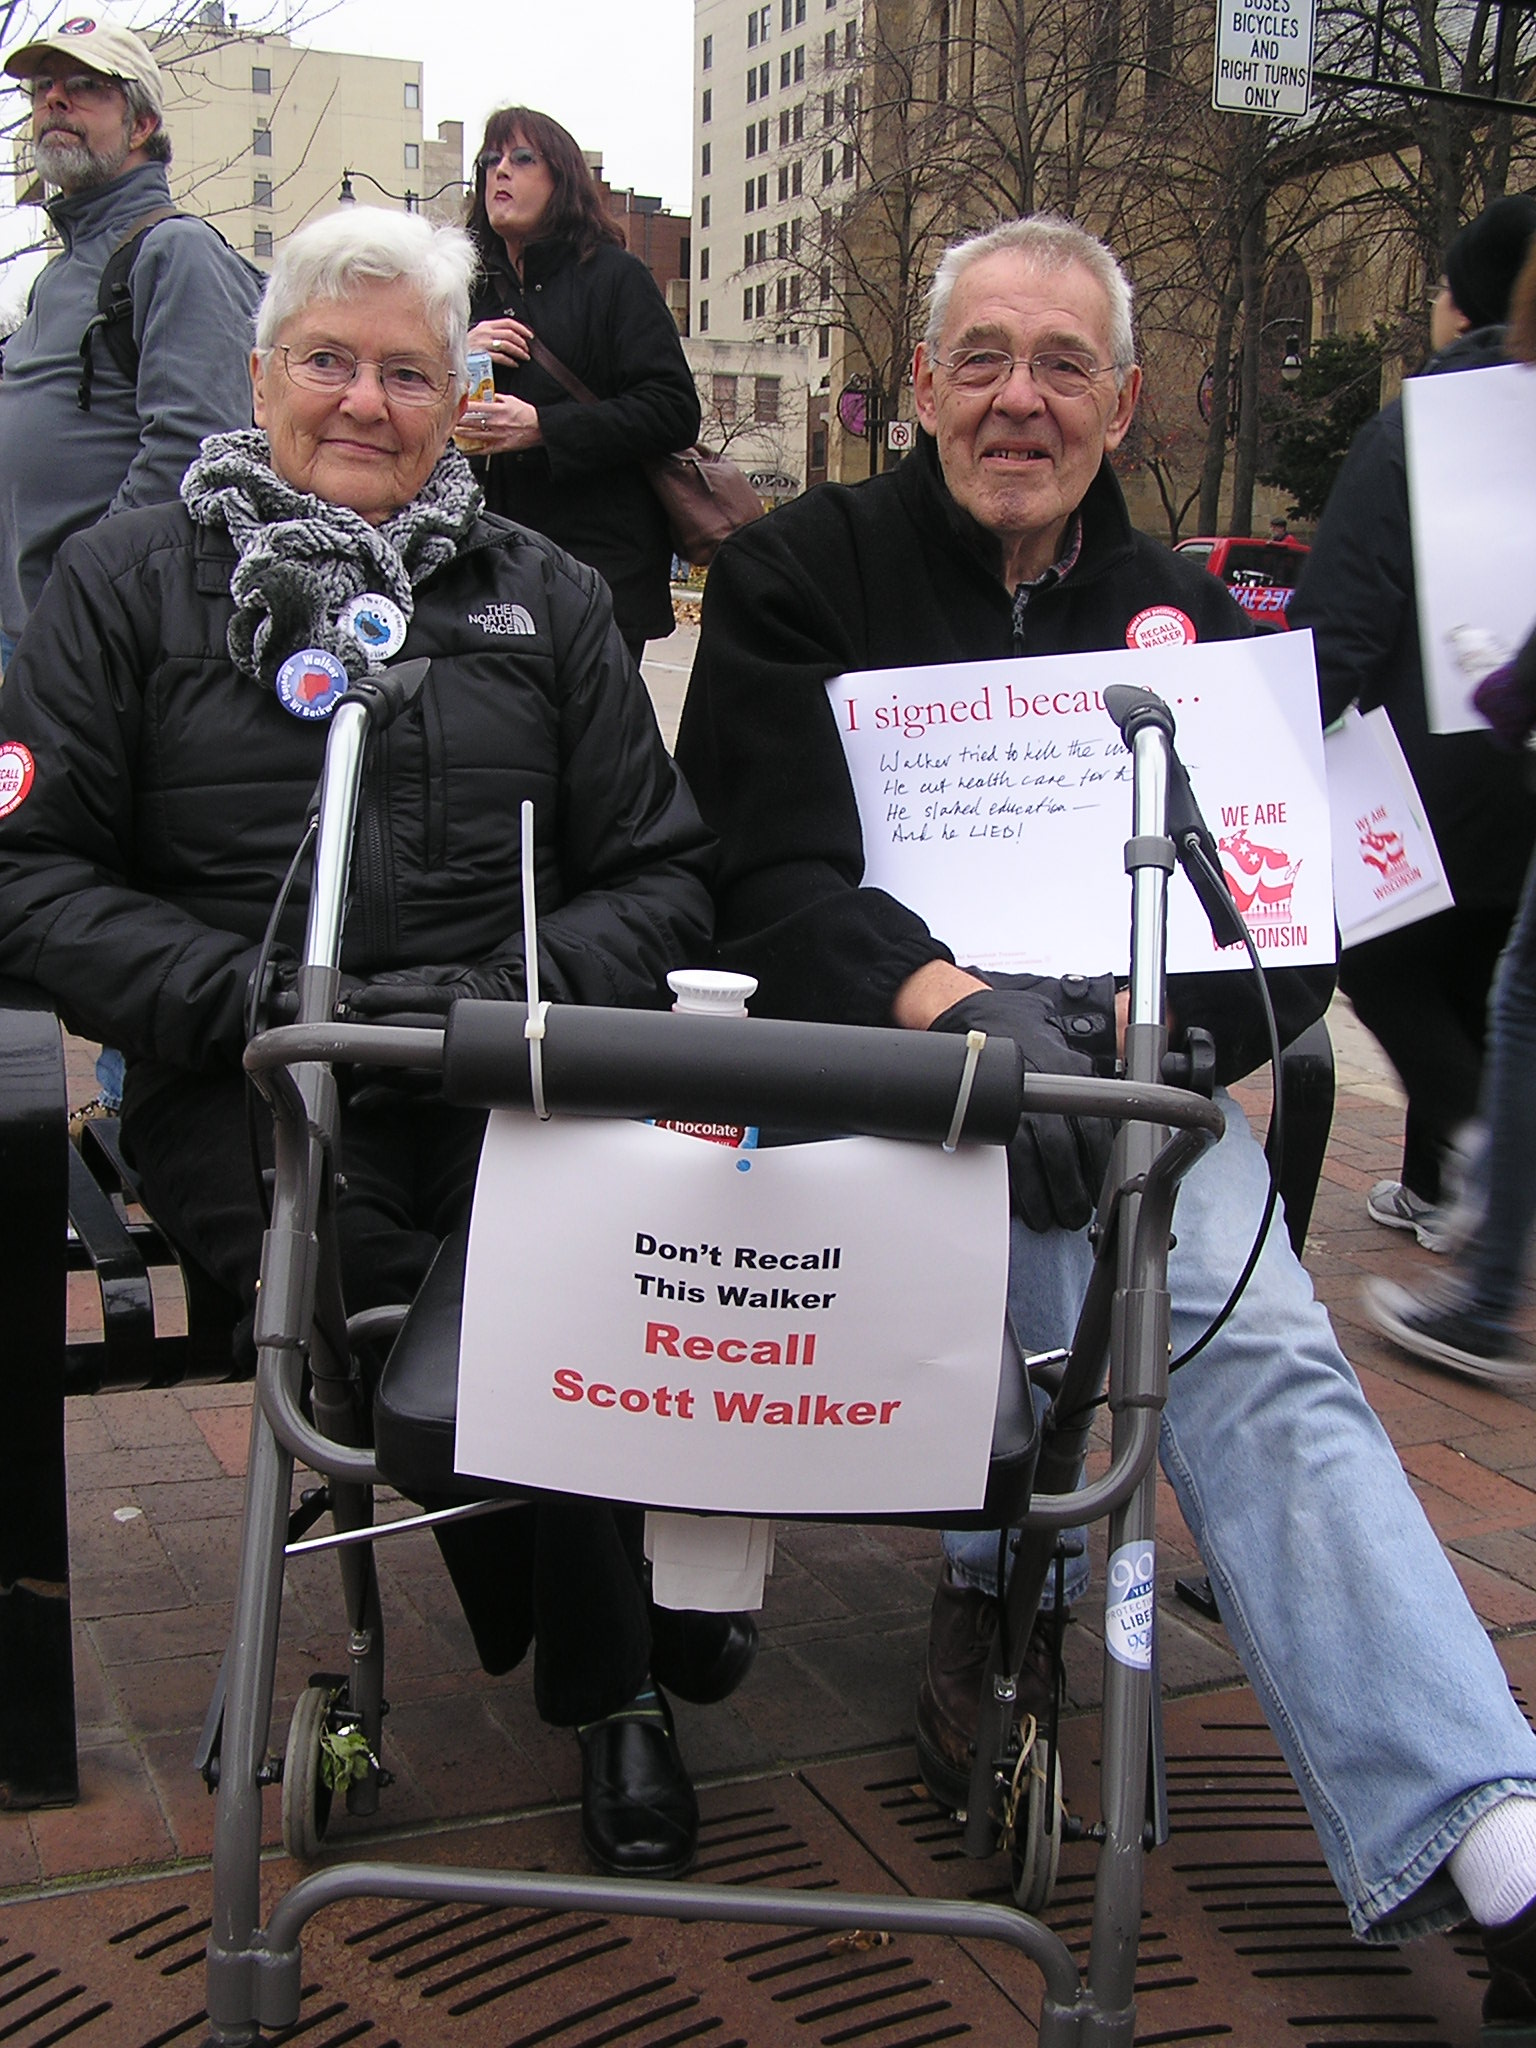 Norma &amp; Mike Briggs &#8211; Voices from the Rally Crowd (pt 3)